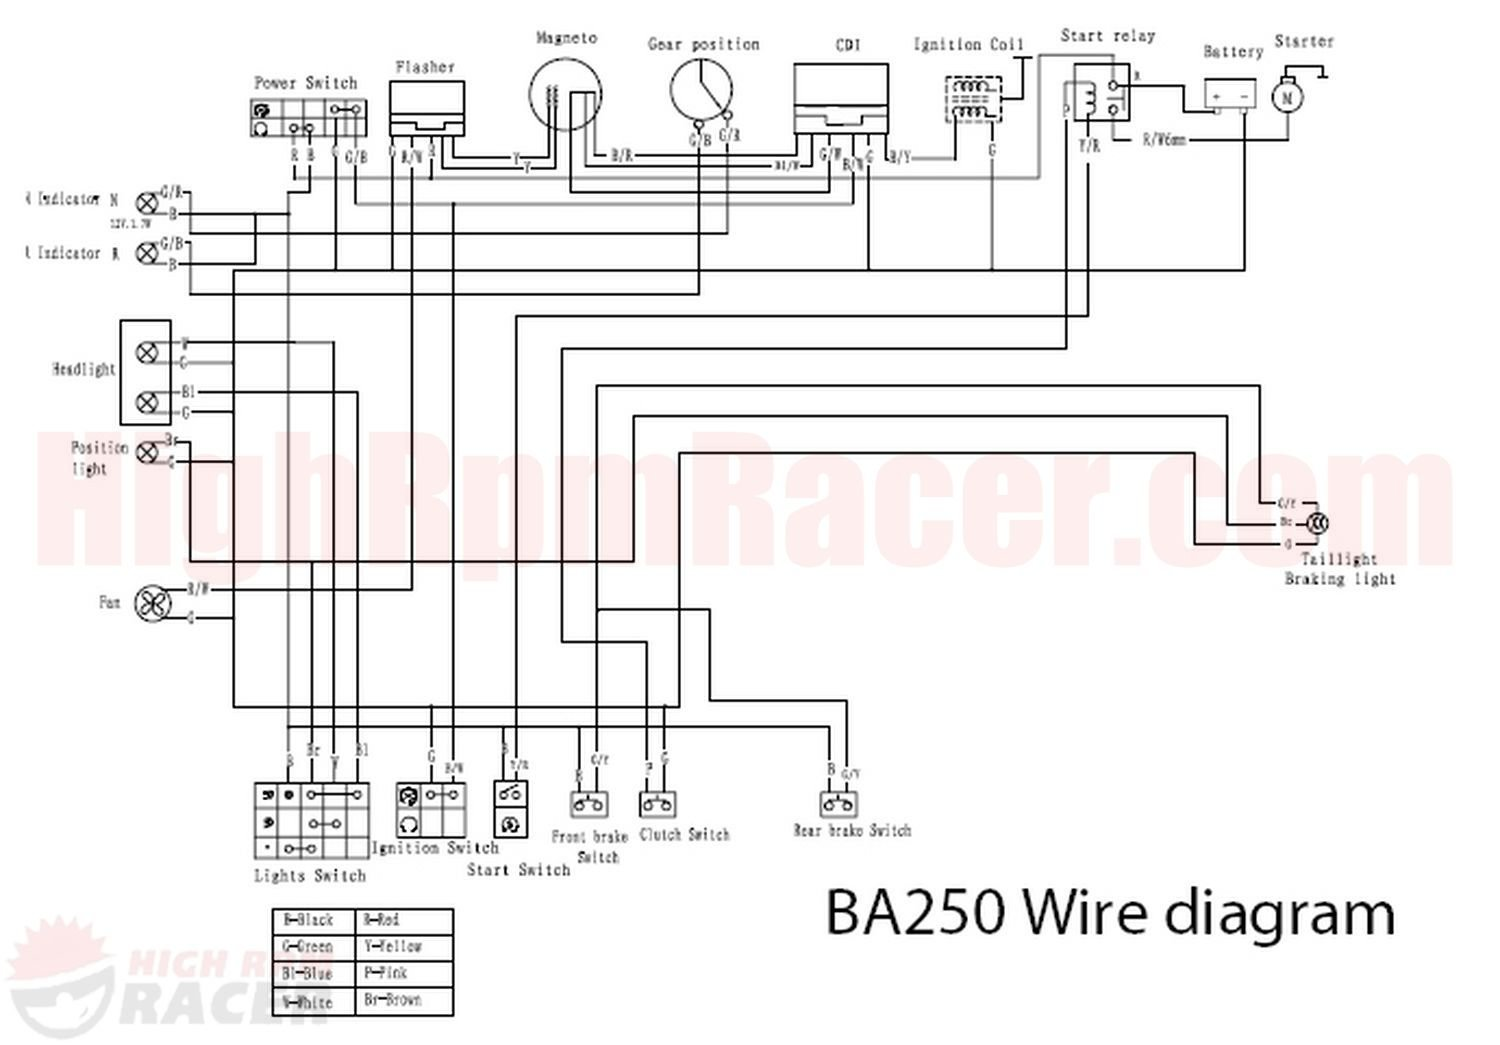 baja250_wd loncin 200cc atv wiring diagram wiring diagram simonand roketa 50cc atv wiring diagram at webbmarketing.co